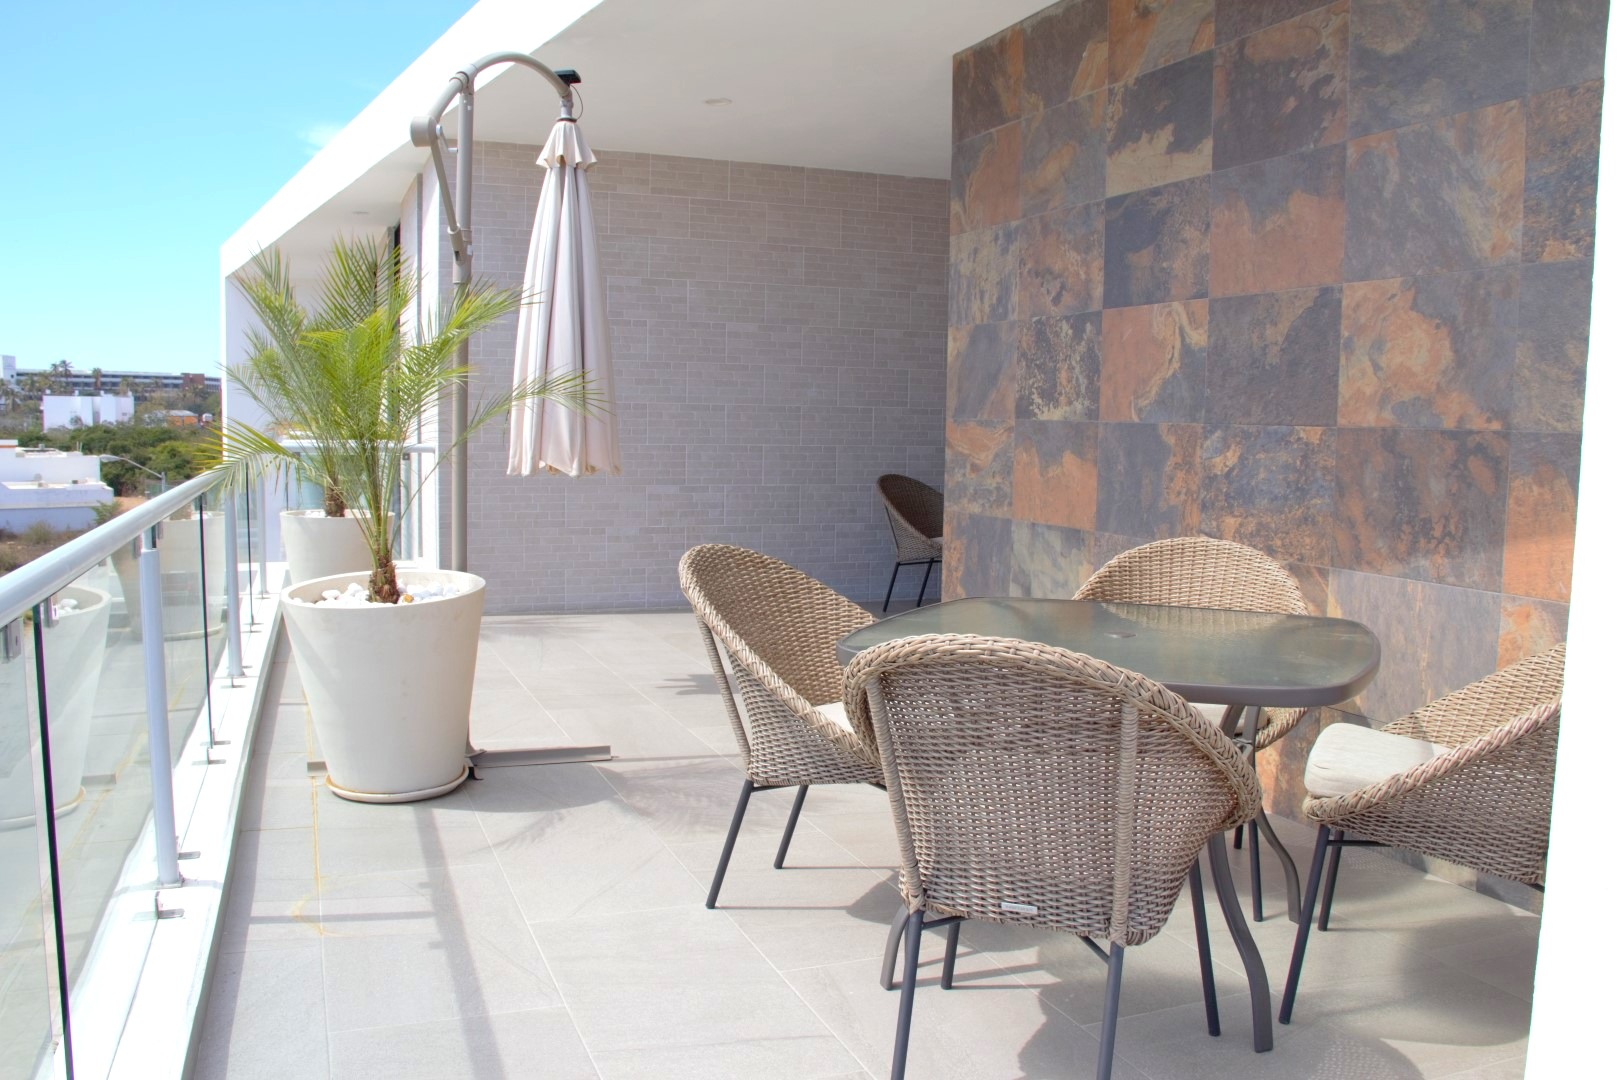 Large private terrace with outdoor dining for 4 people.